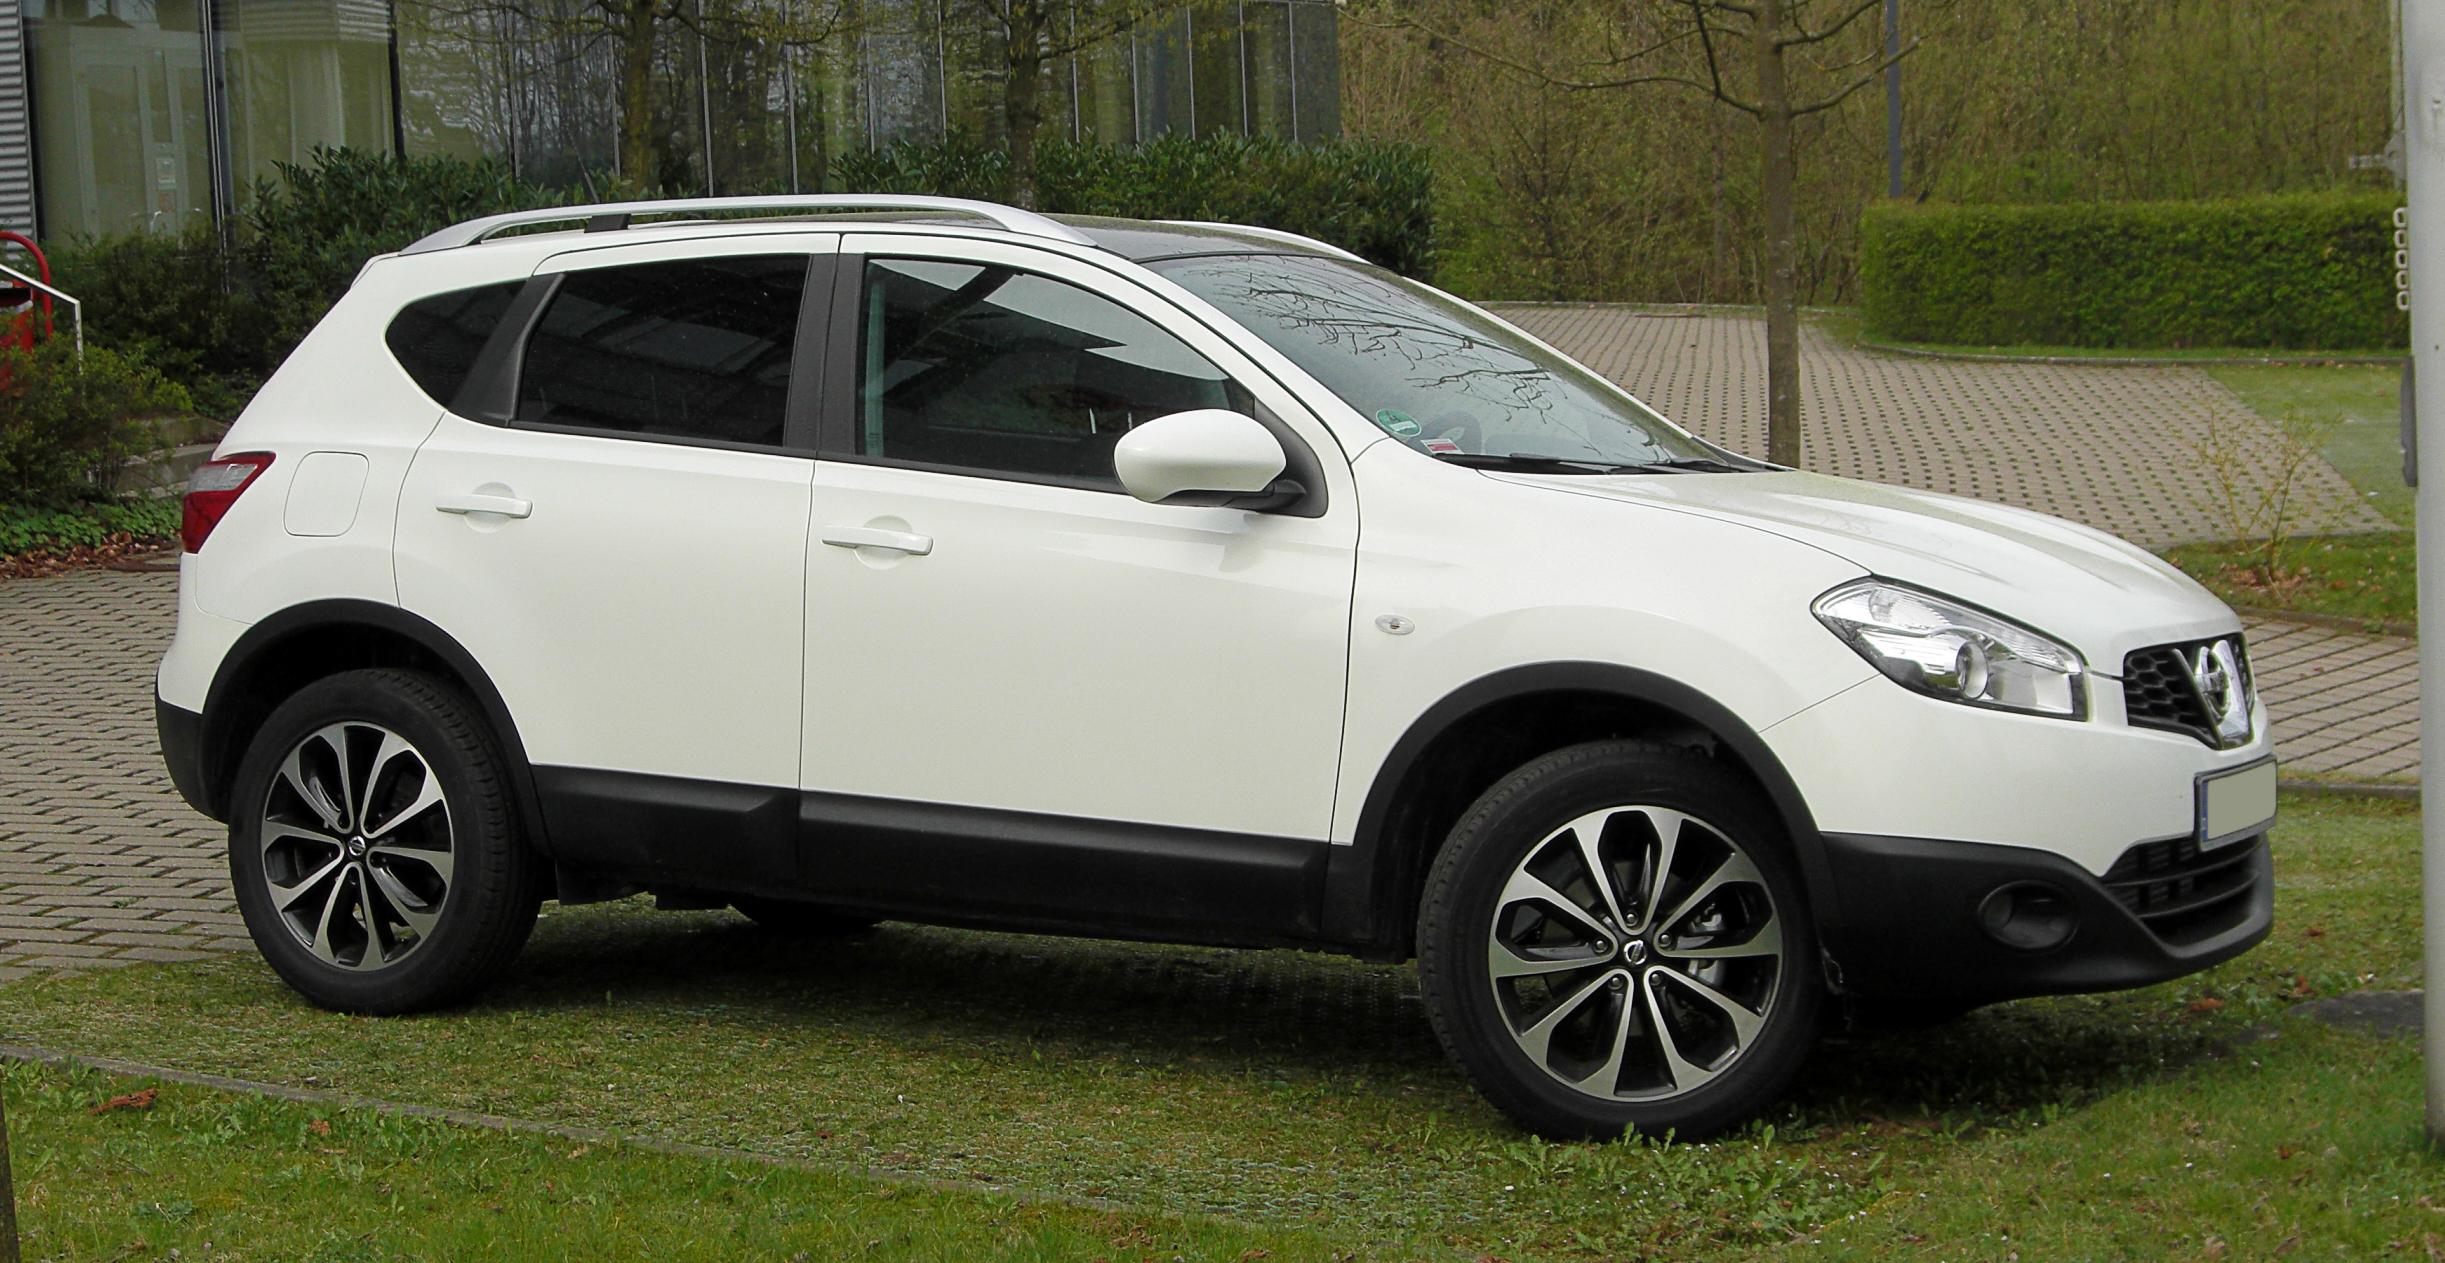 nissan qashqai 2 0 tekna auto informatie. Black Bedroom Furniture Sets. Home Design Ideas